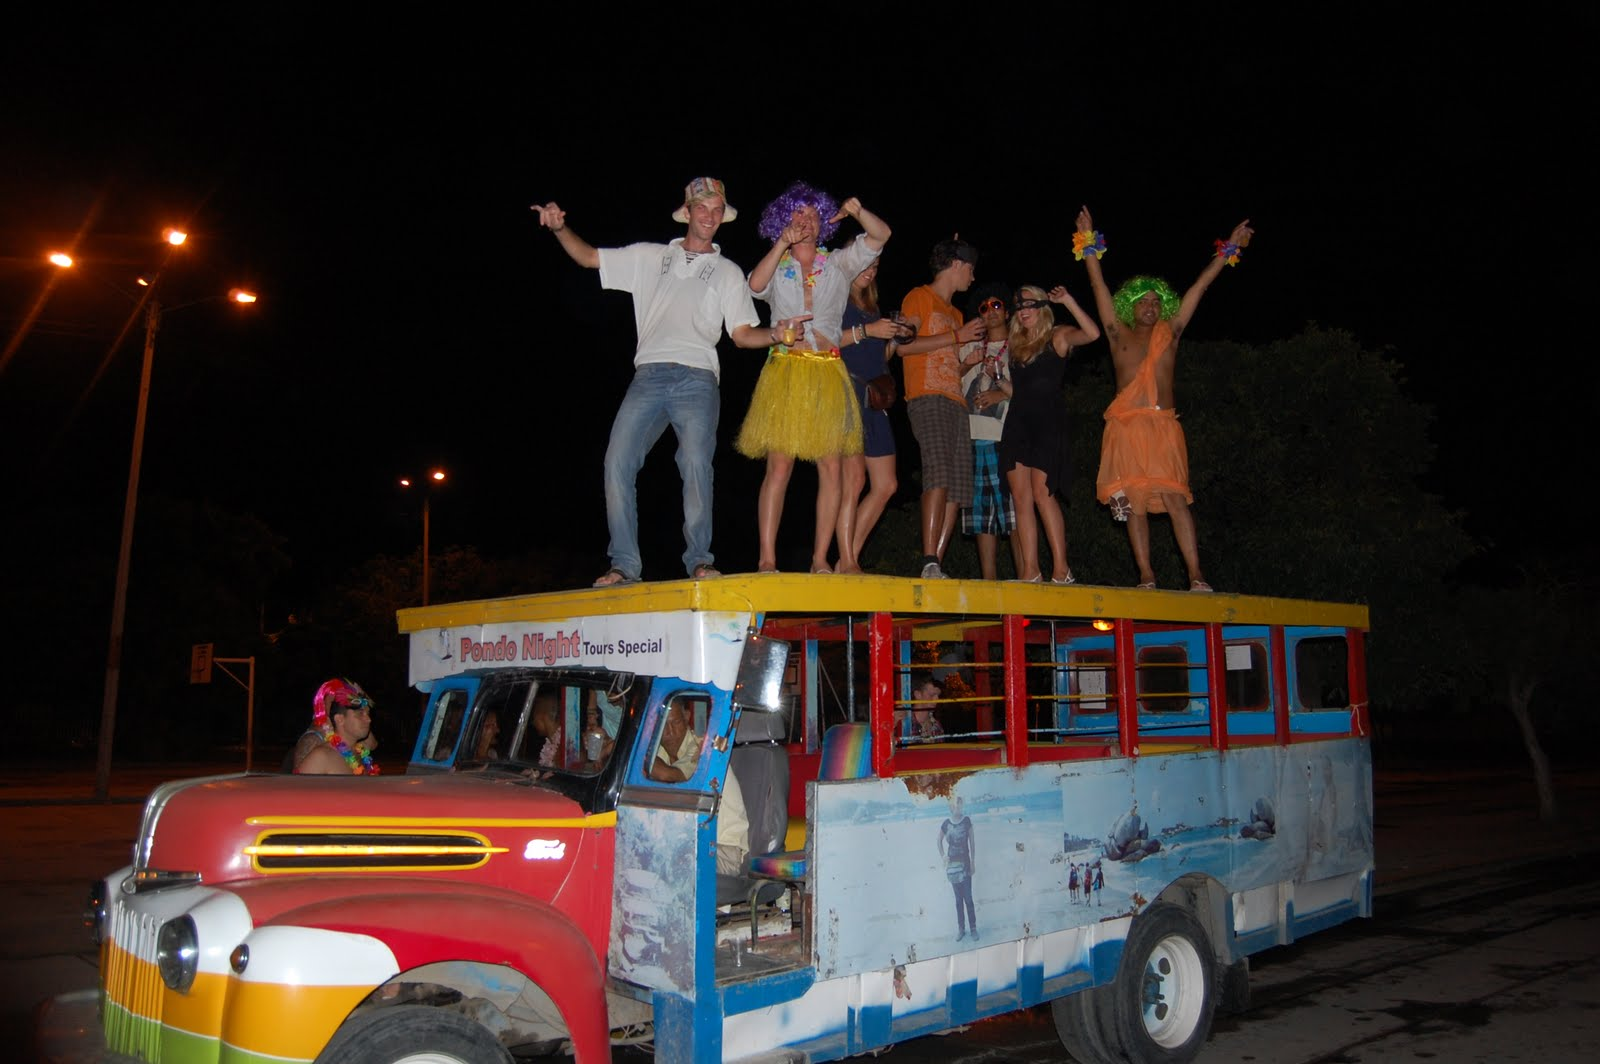 People dancing on a chiva bus on Halloween